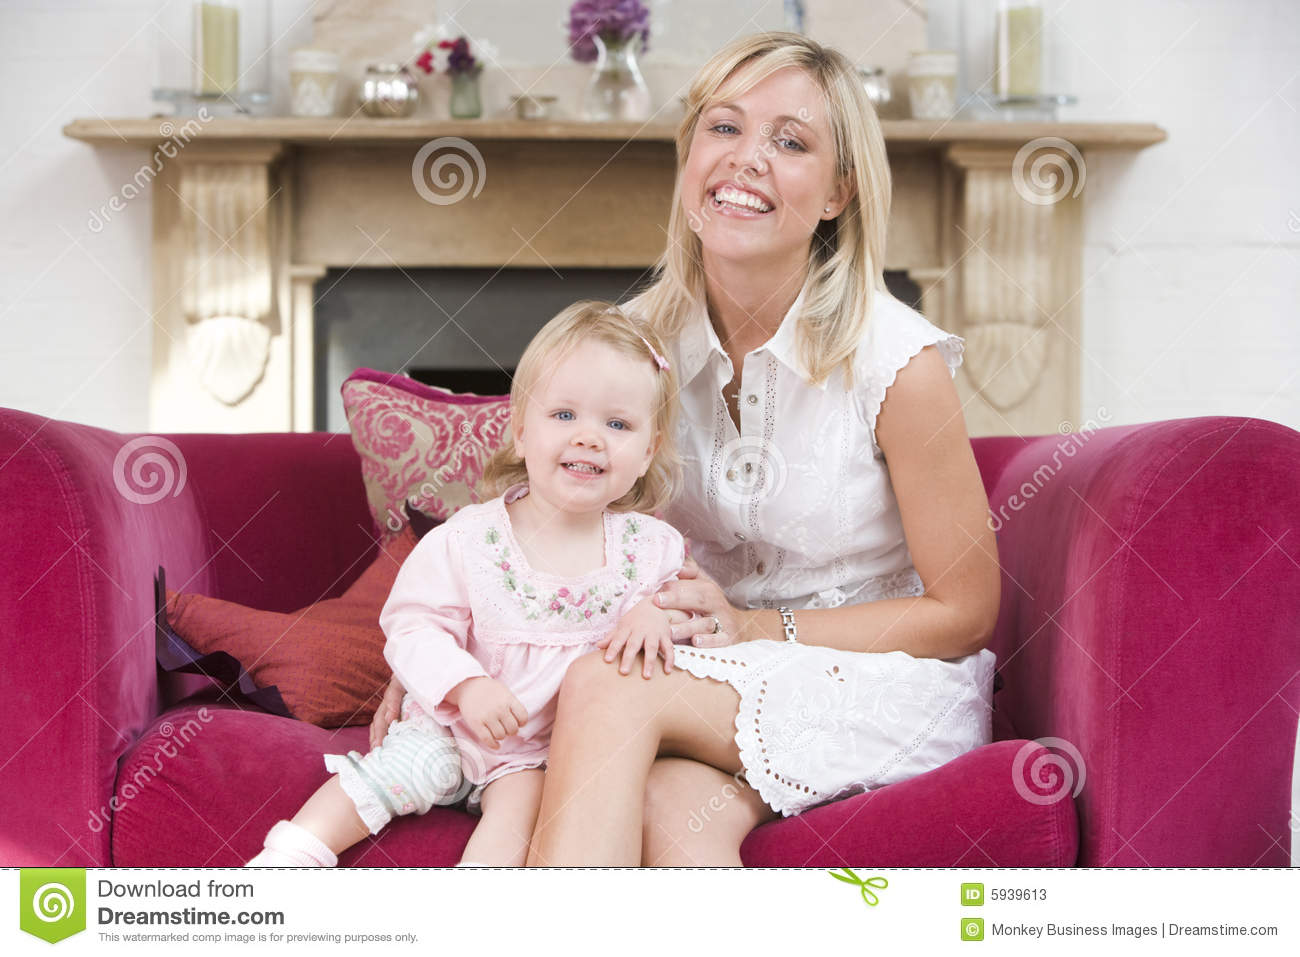 baby living room and baby in living room royalty free stock image 10607